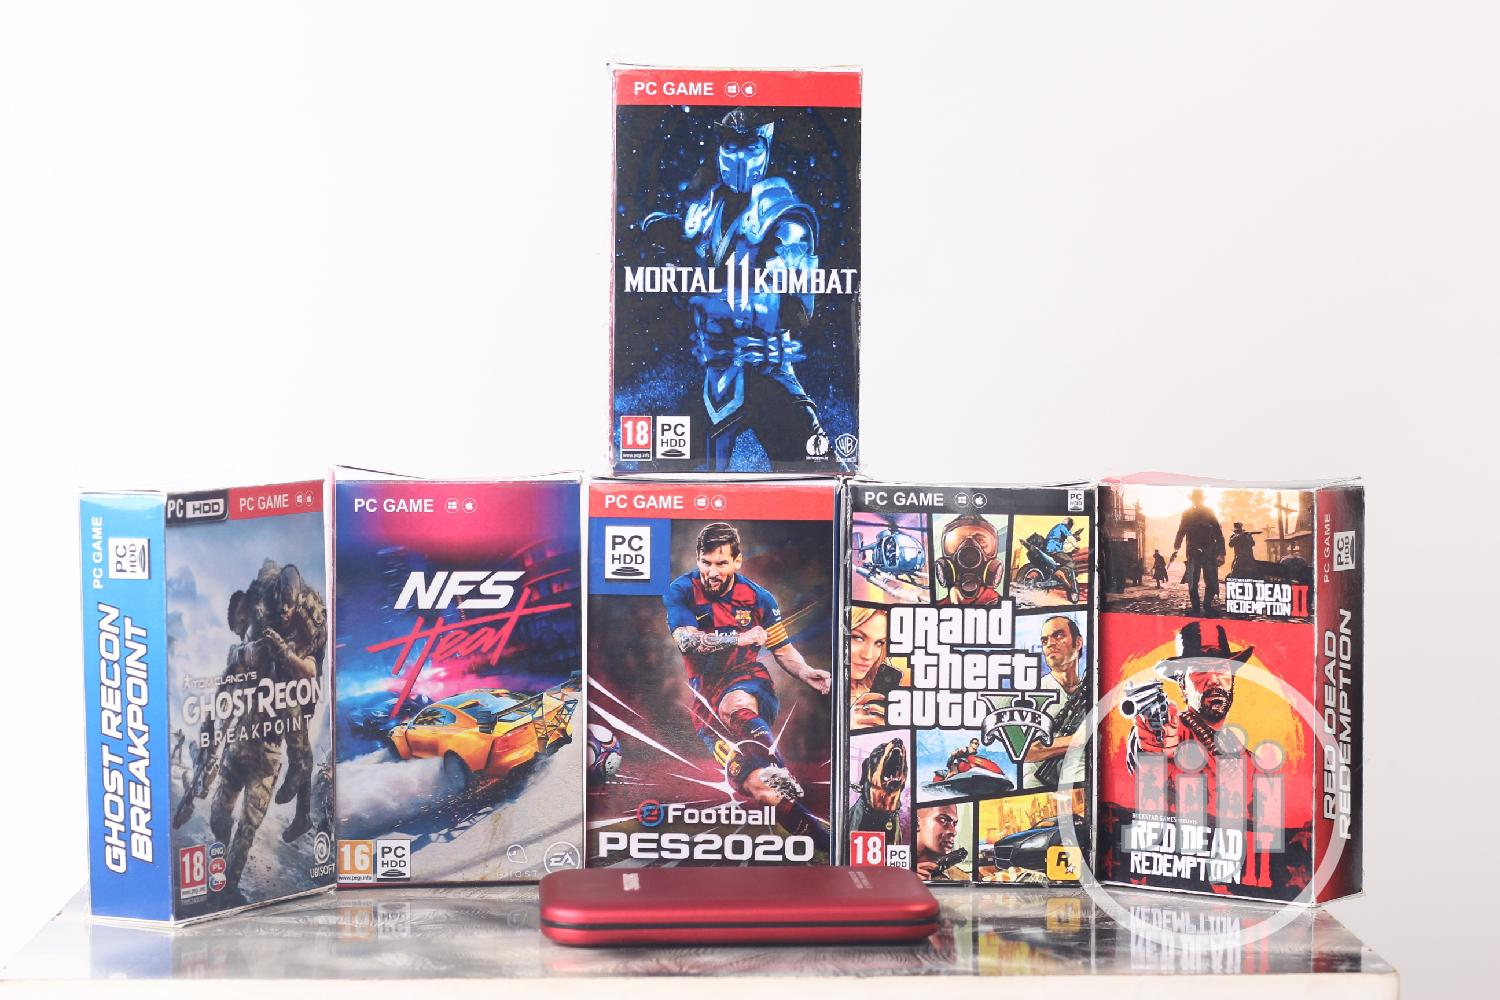 Archive: Latest 2021 PC Games Available for Sale and Delivery